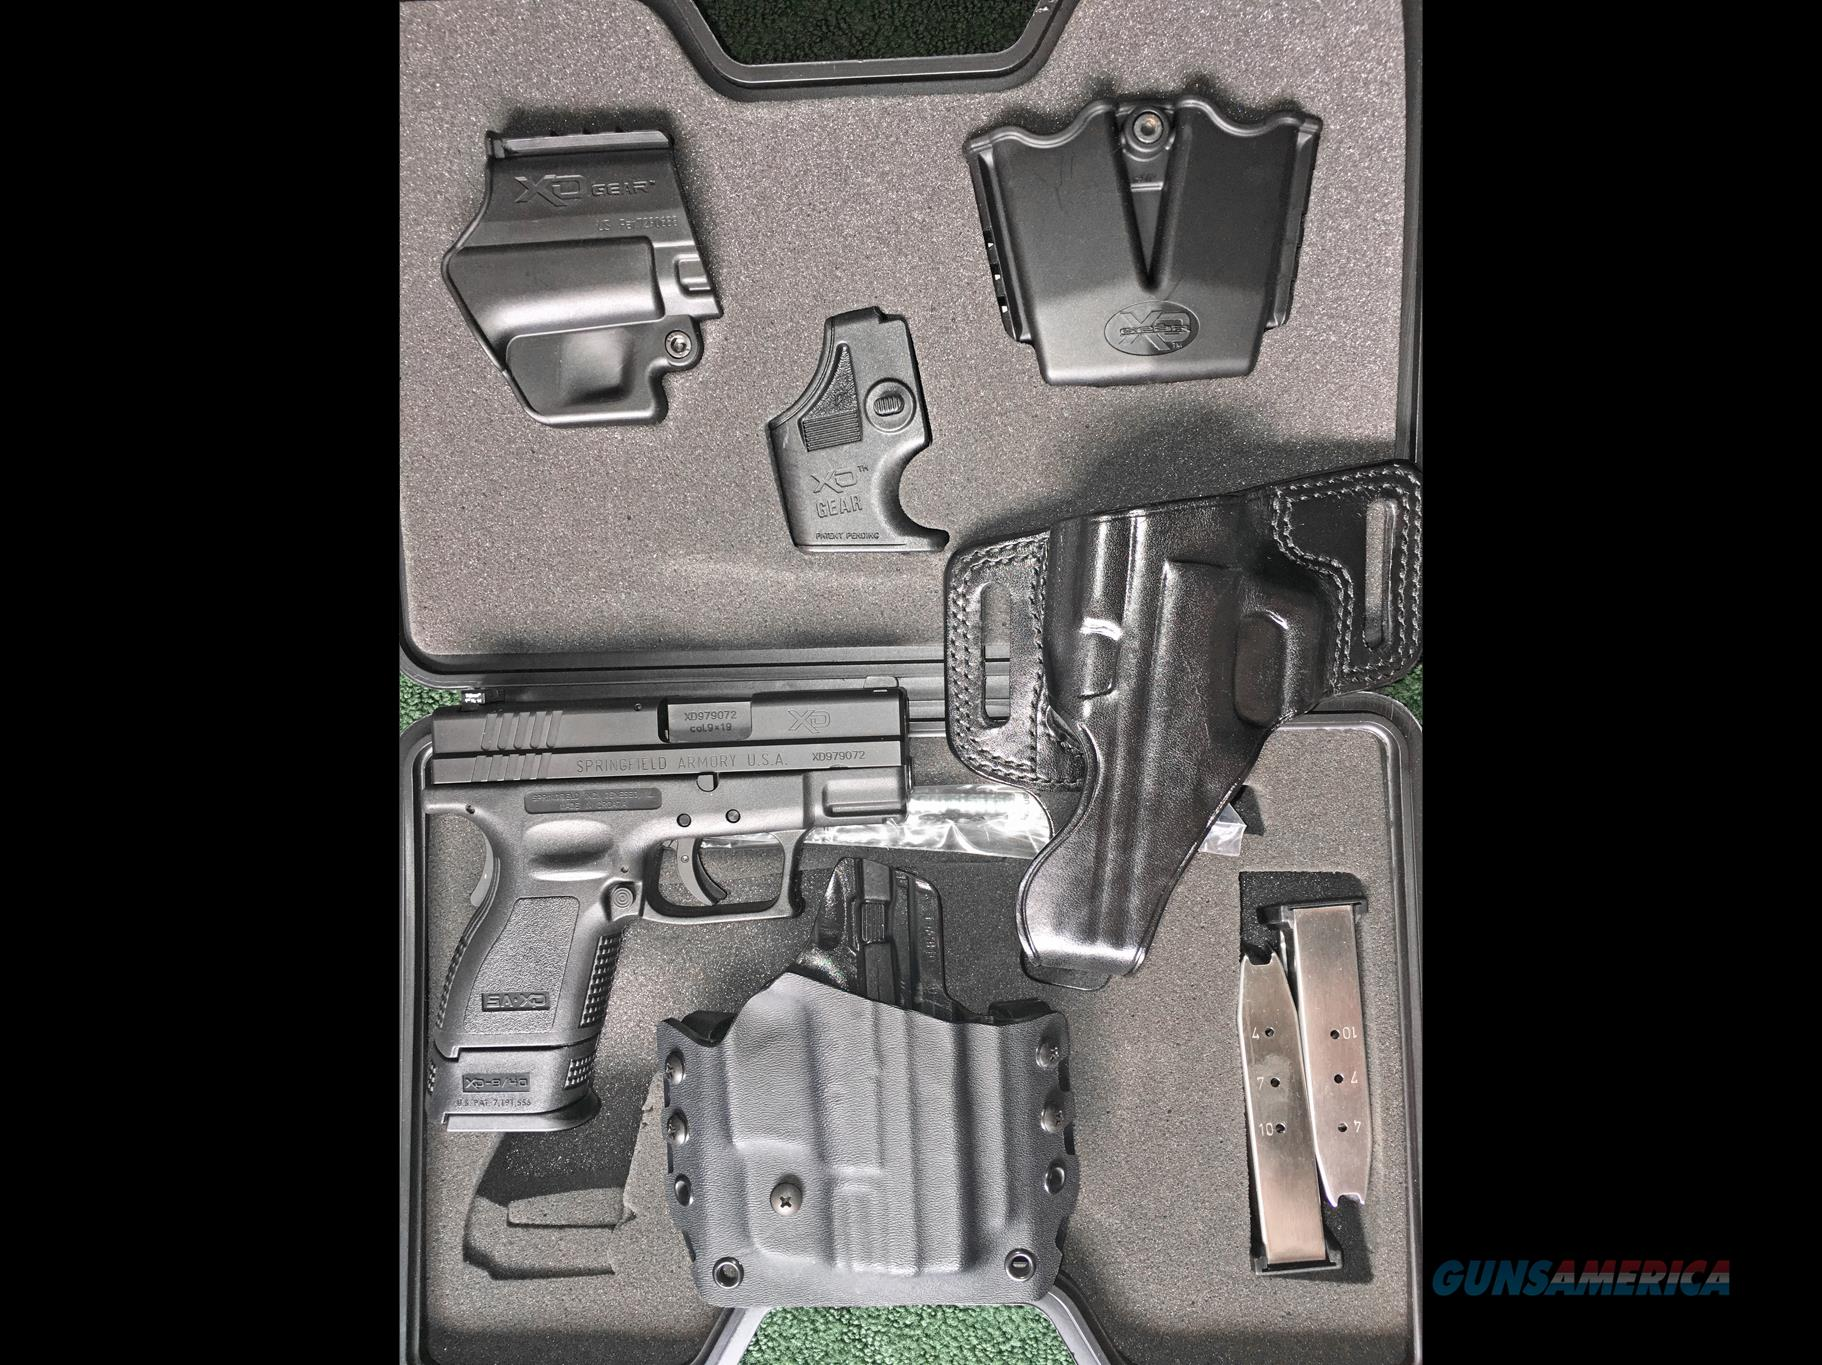 "Springfield XD9 Subcompact 3"" 9mm Conceal Carry Package, Trijicon Night Sights, Extra Holsters, CA PPT OK  Guns > Pistols > Springfield Armory Pistols > XD (eXtreme Duty)"